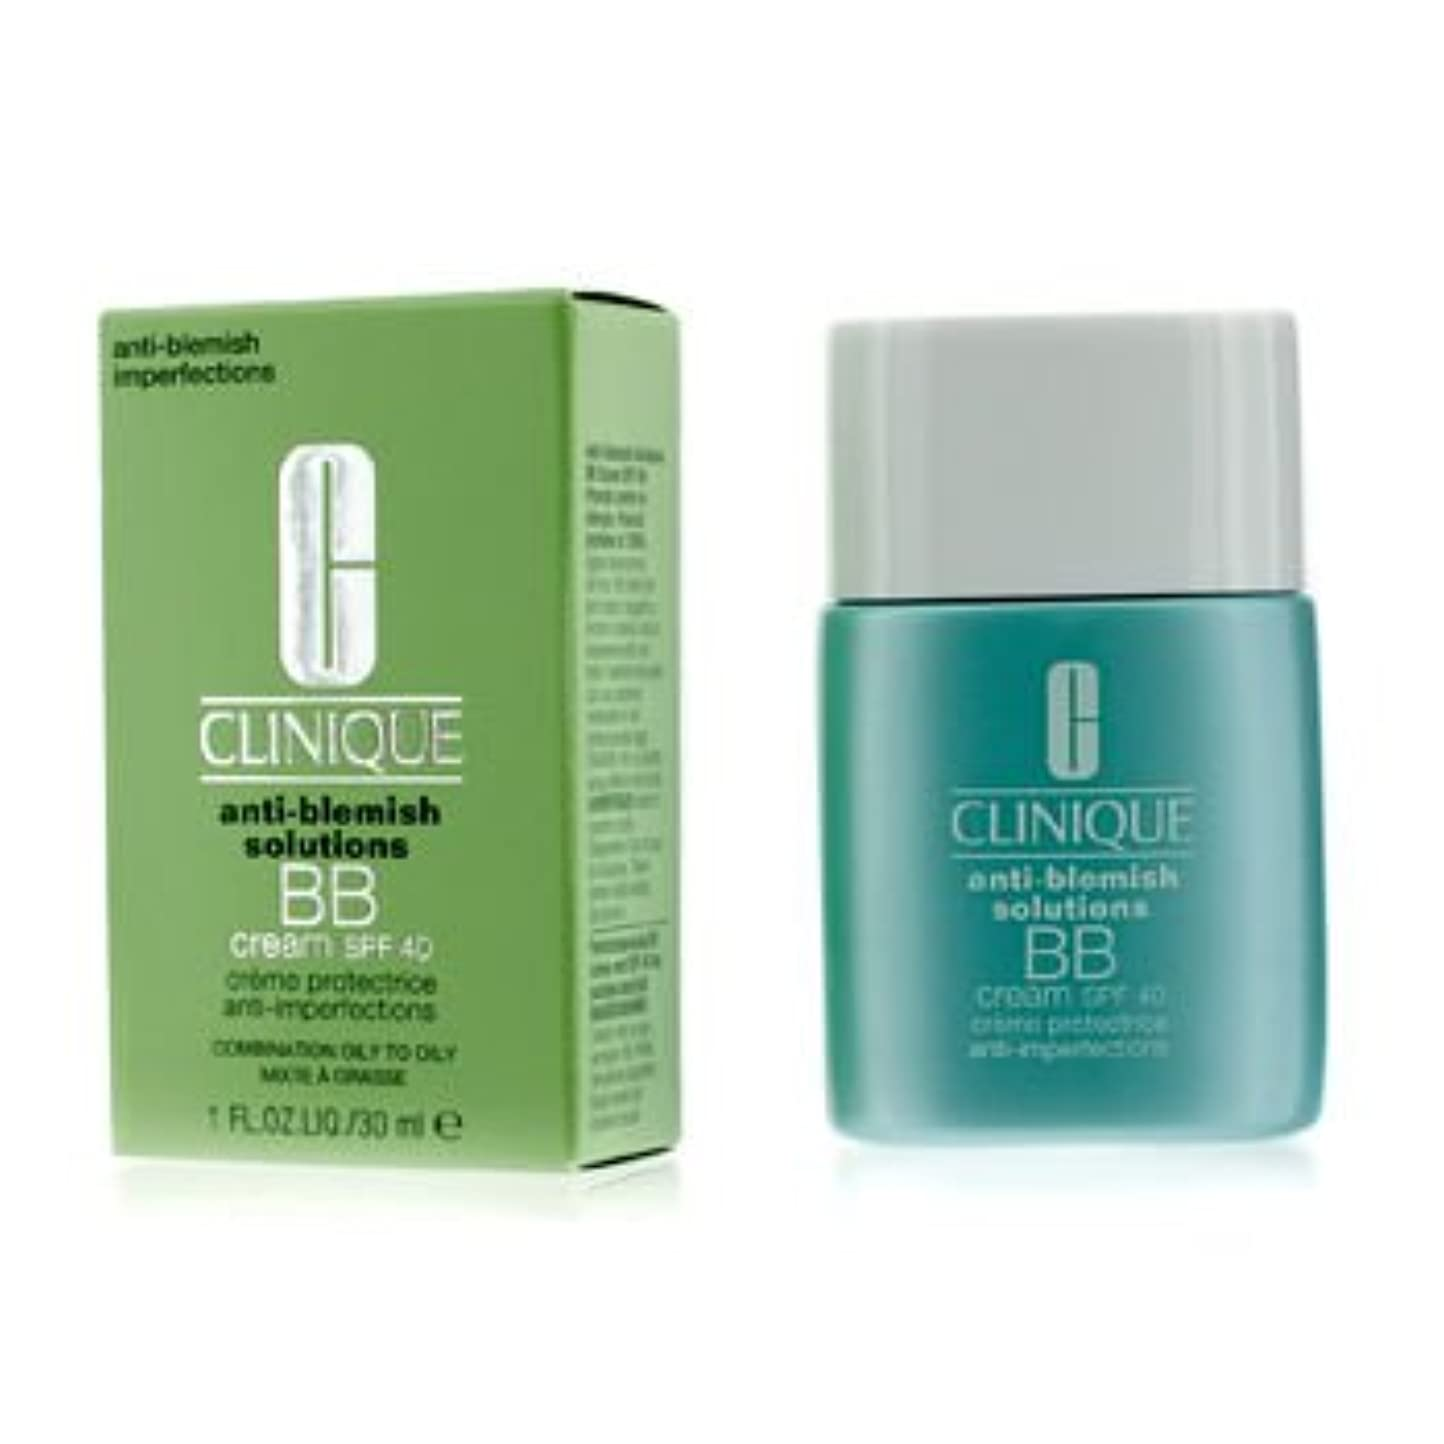 衝撃ワードローブ上回る[Clinique] Anti-Blemish Solutions BB Cream SPF 40 - Light Medium (Combination Oily to Oily) 30ml/1oz